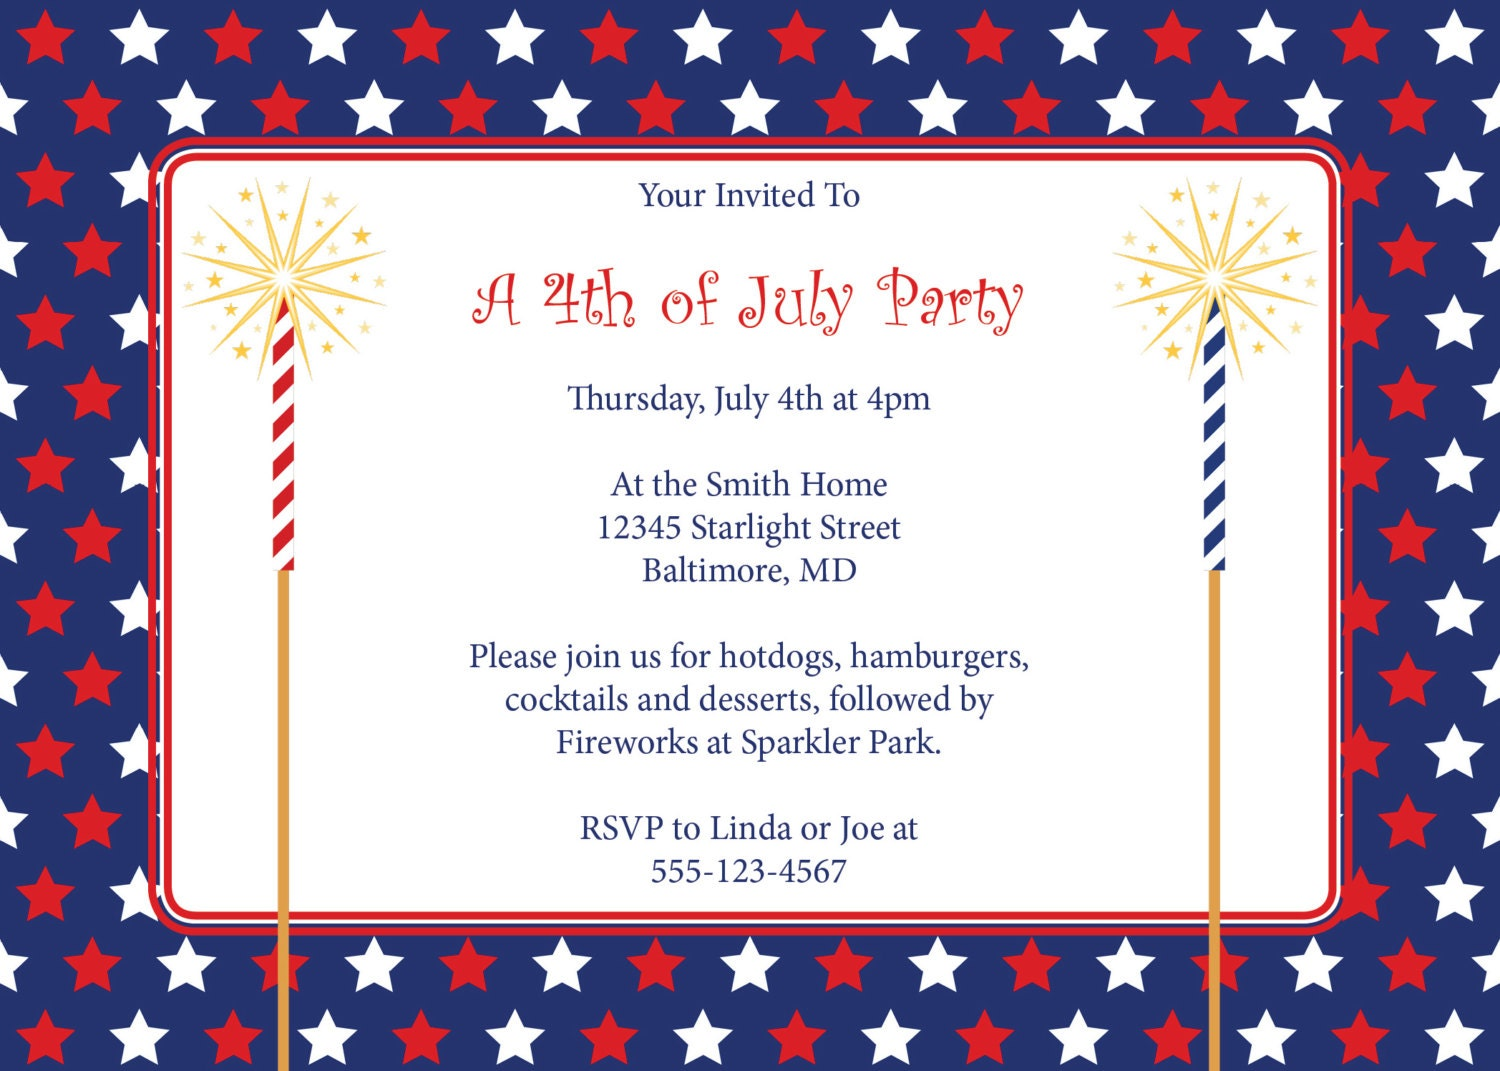 Pool Party Invitations Uk with great invitations template